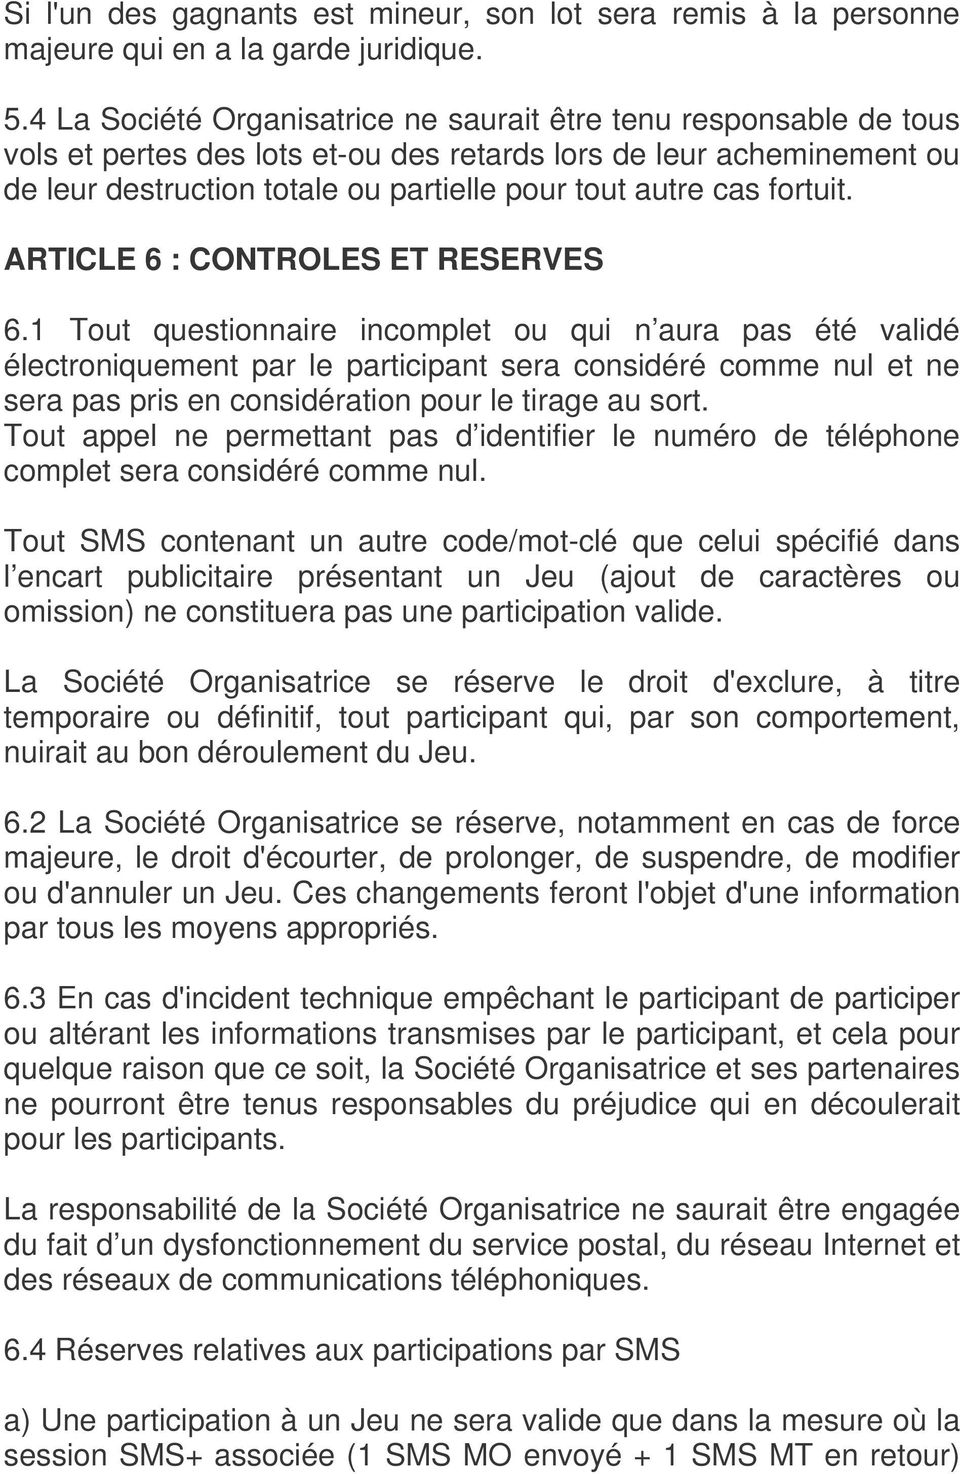 fortuit. ARTICLE 6 : CONTROLES ET RESERVES 6.